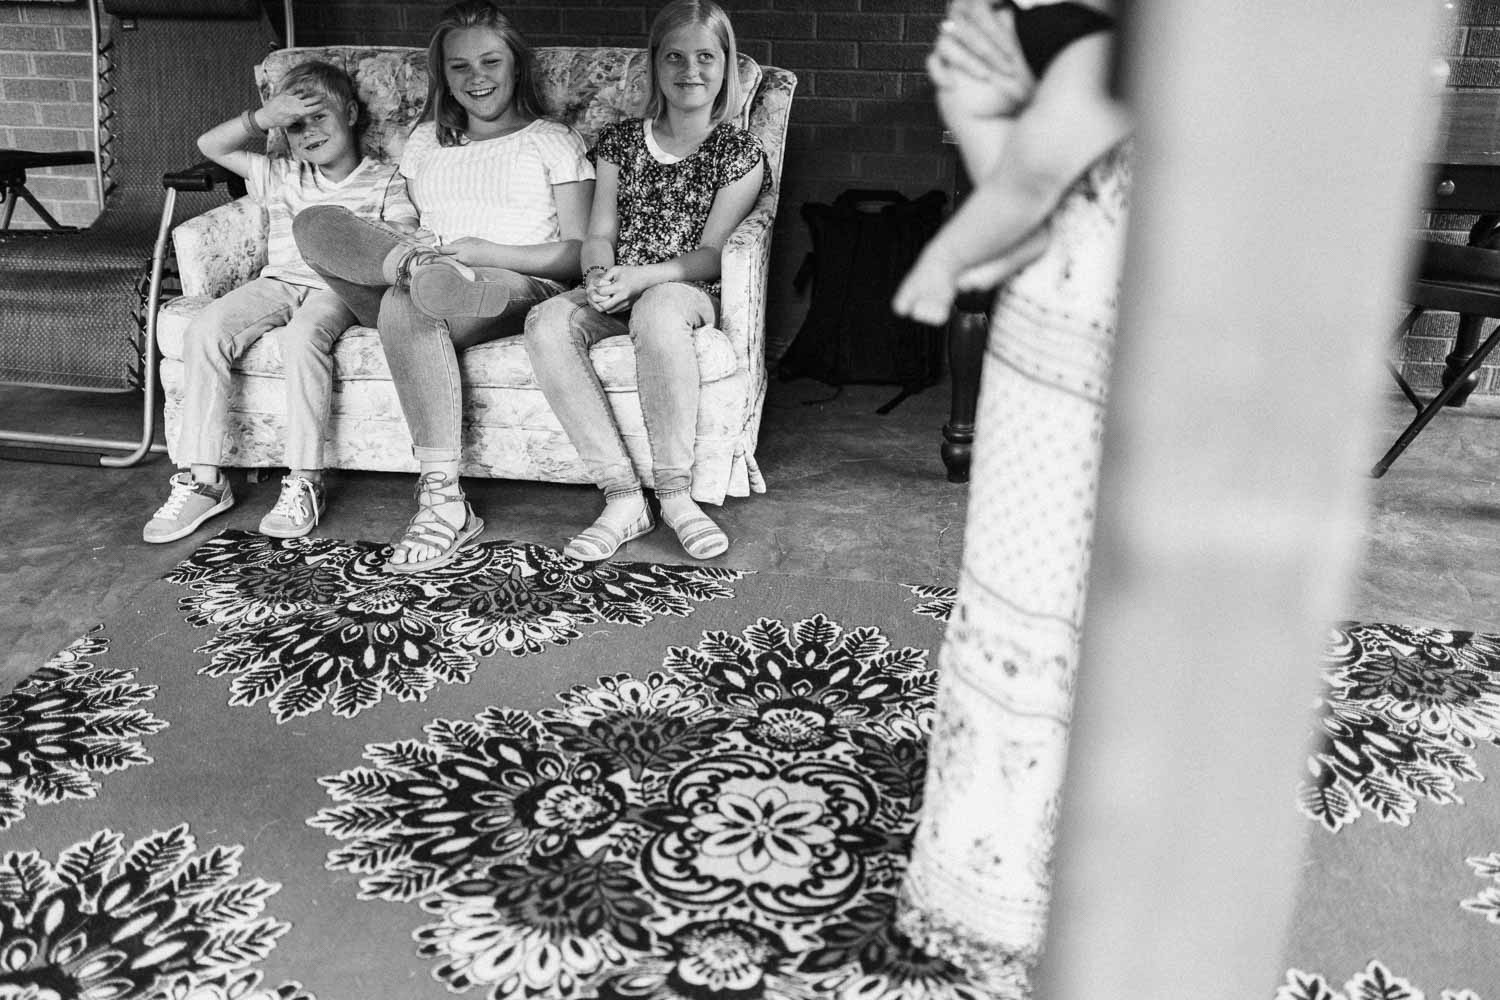 black-and-white-artistic-photo-of-three-girls-sitting-on-couch-in-back-yard-salt-lake-city-utah